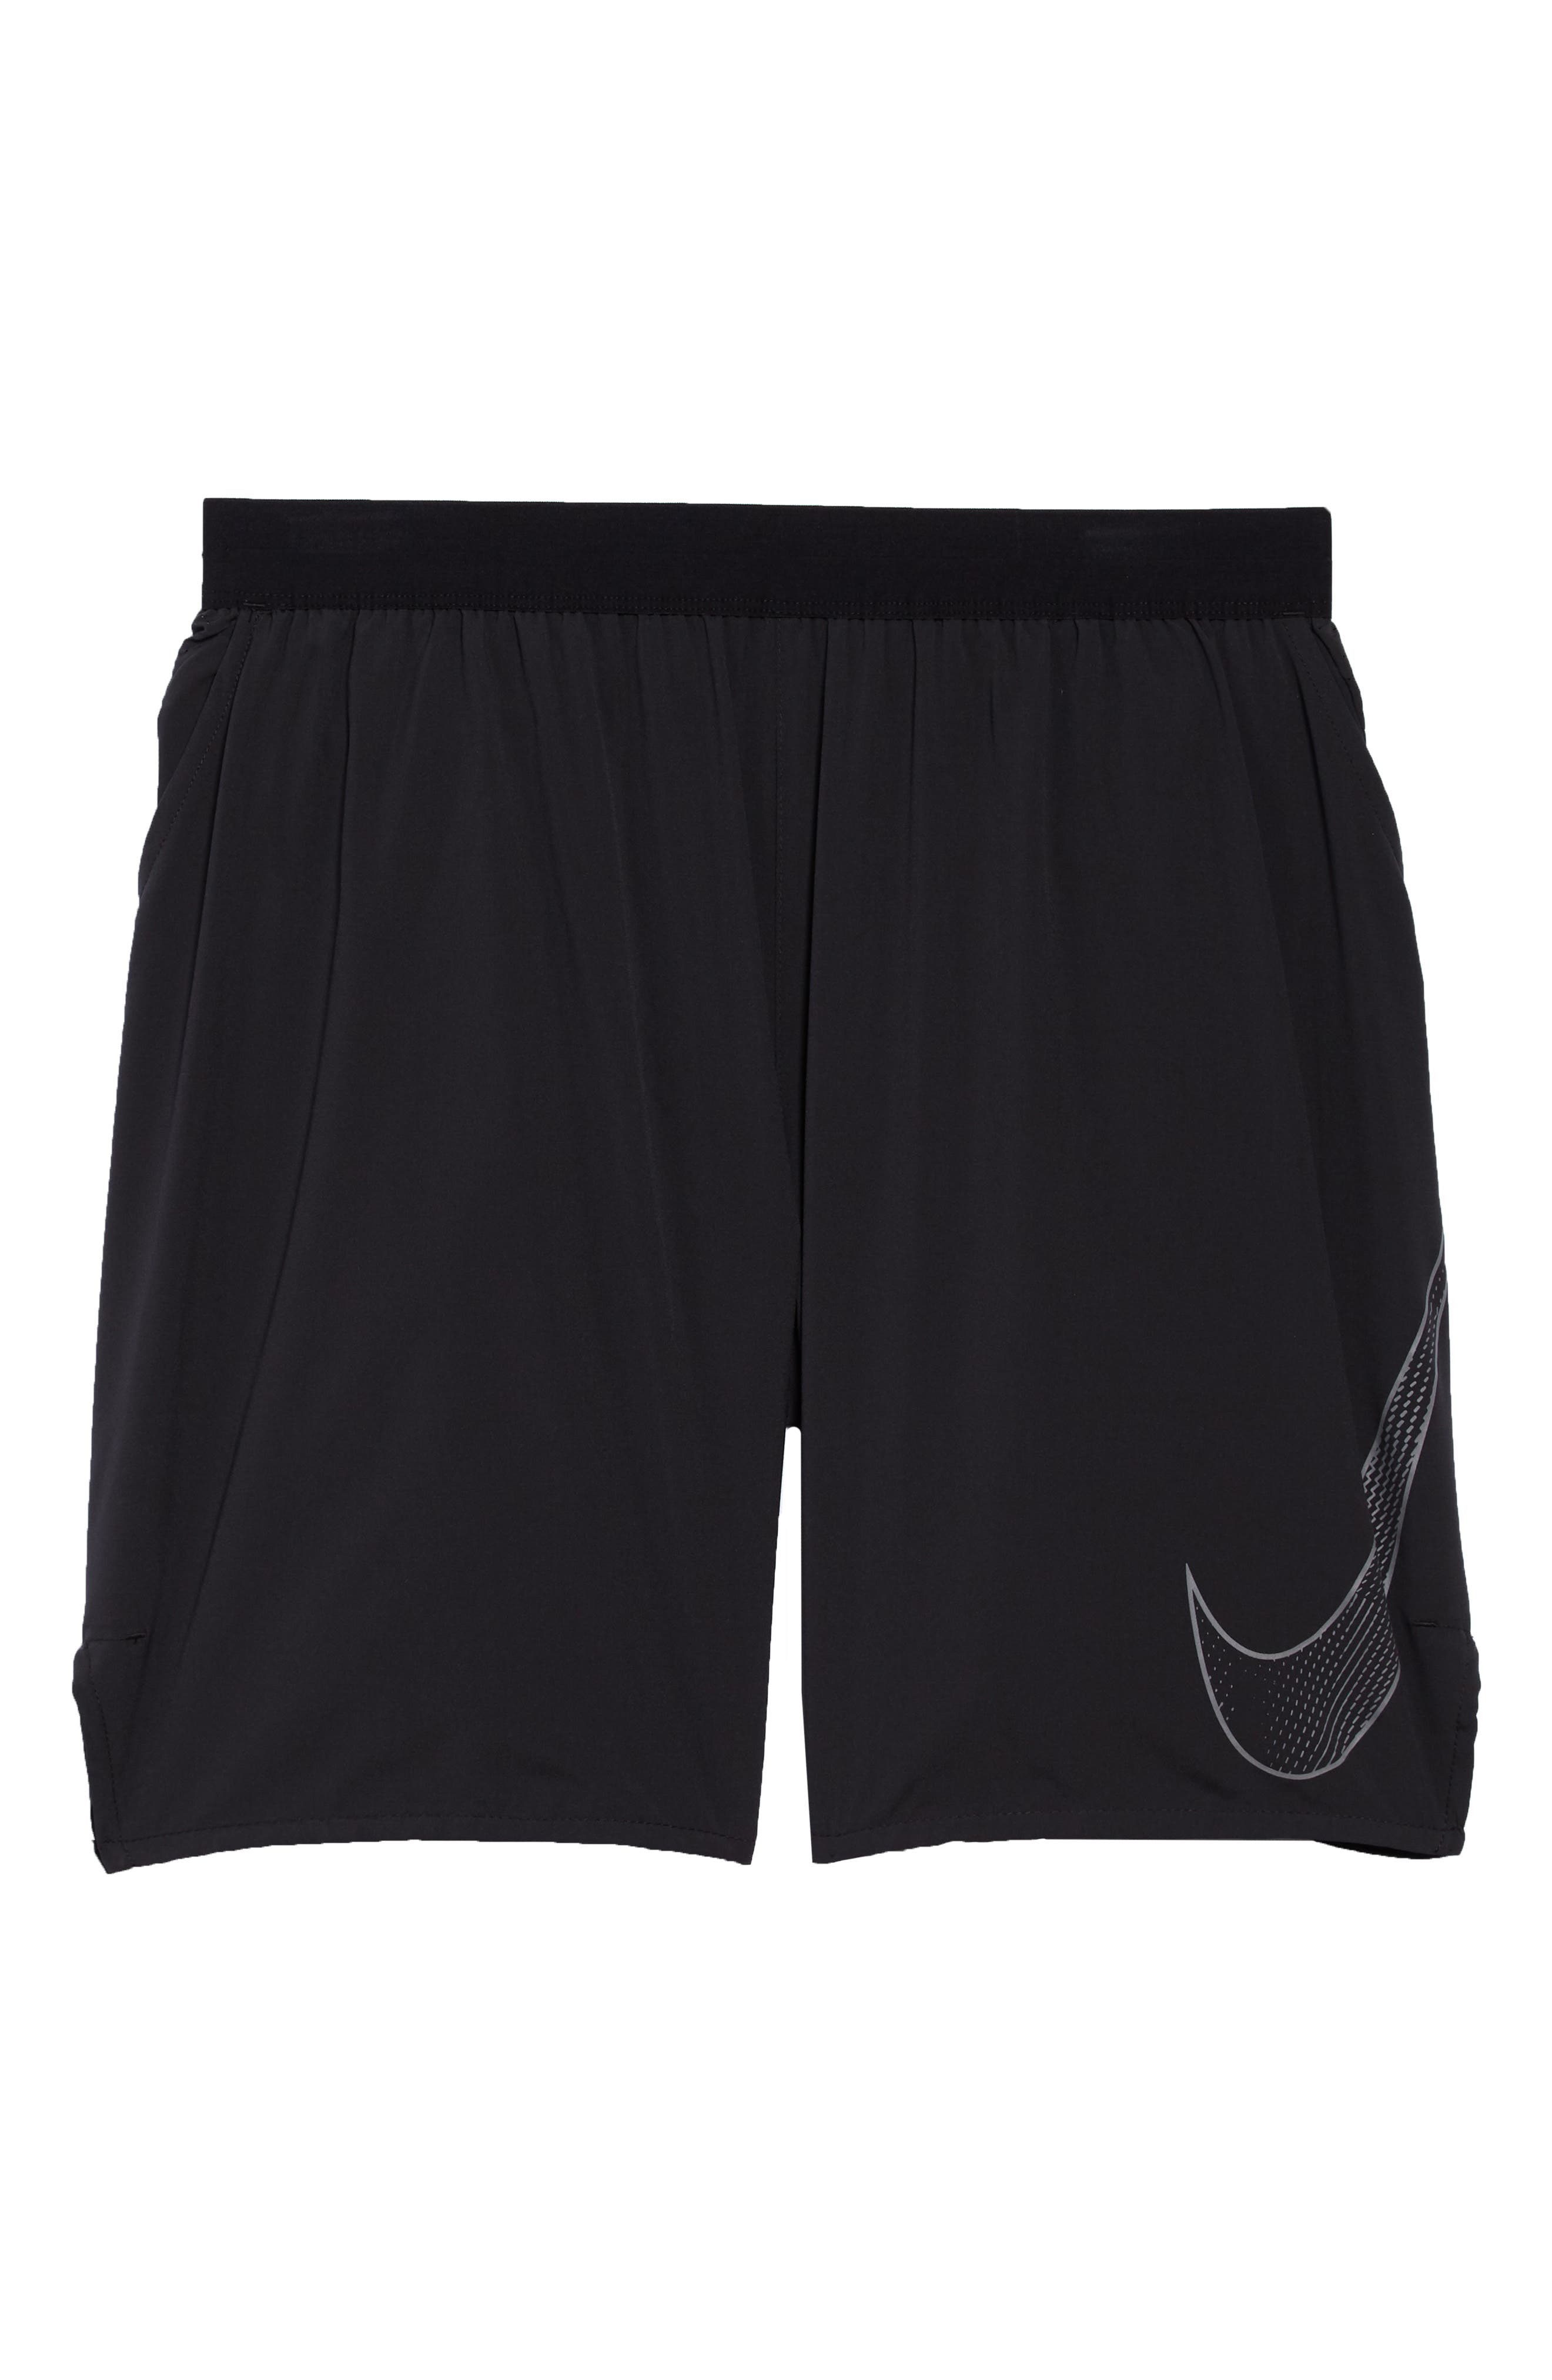 Flex Flash Distance Shorts,                             Alternate thumbnail 6, color,                             010